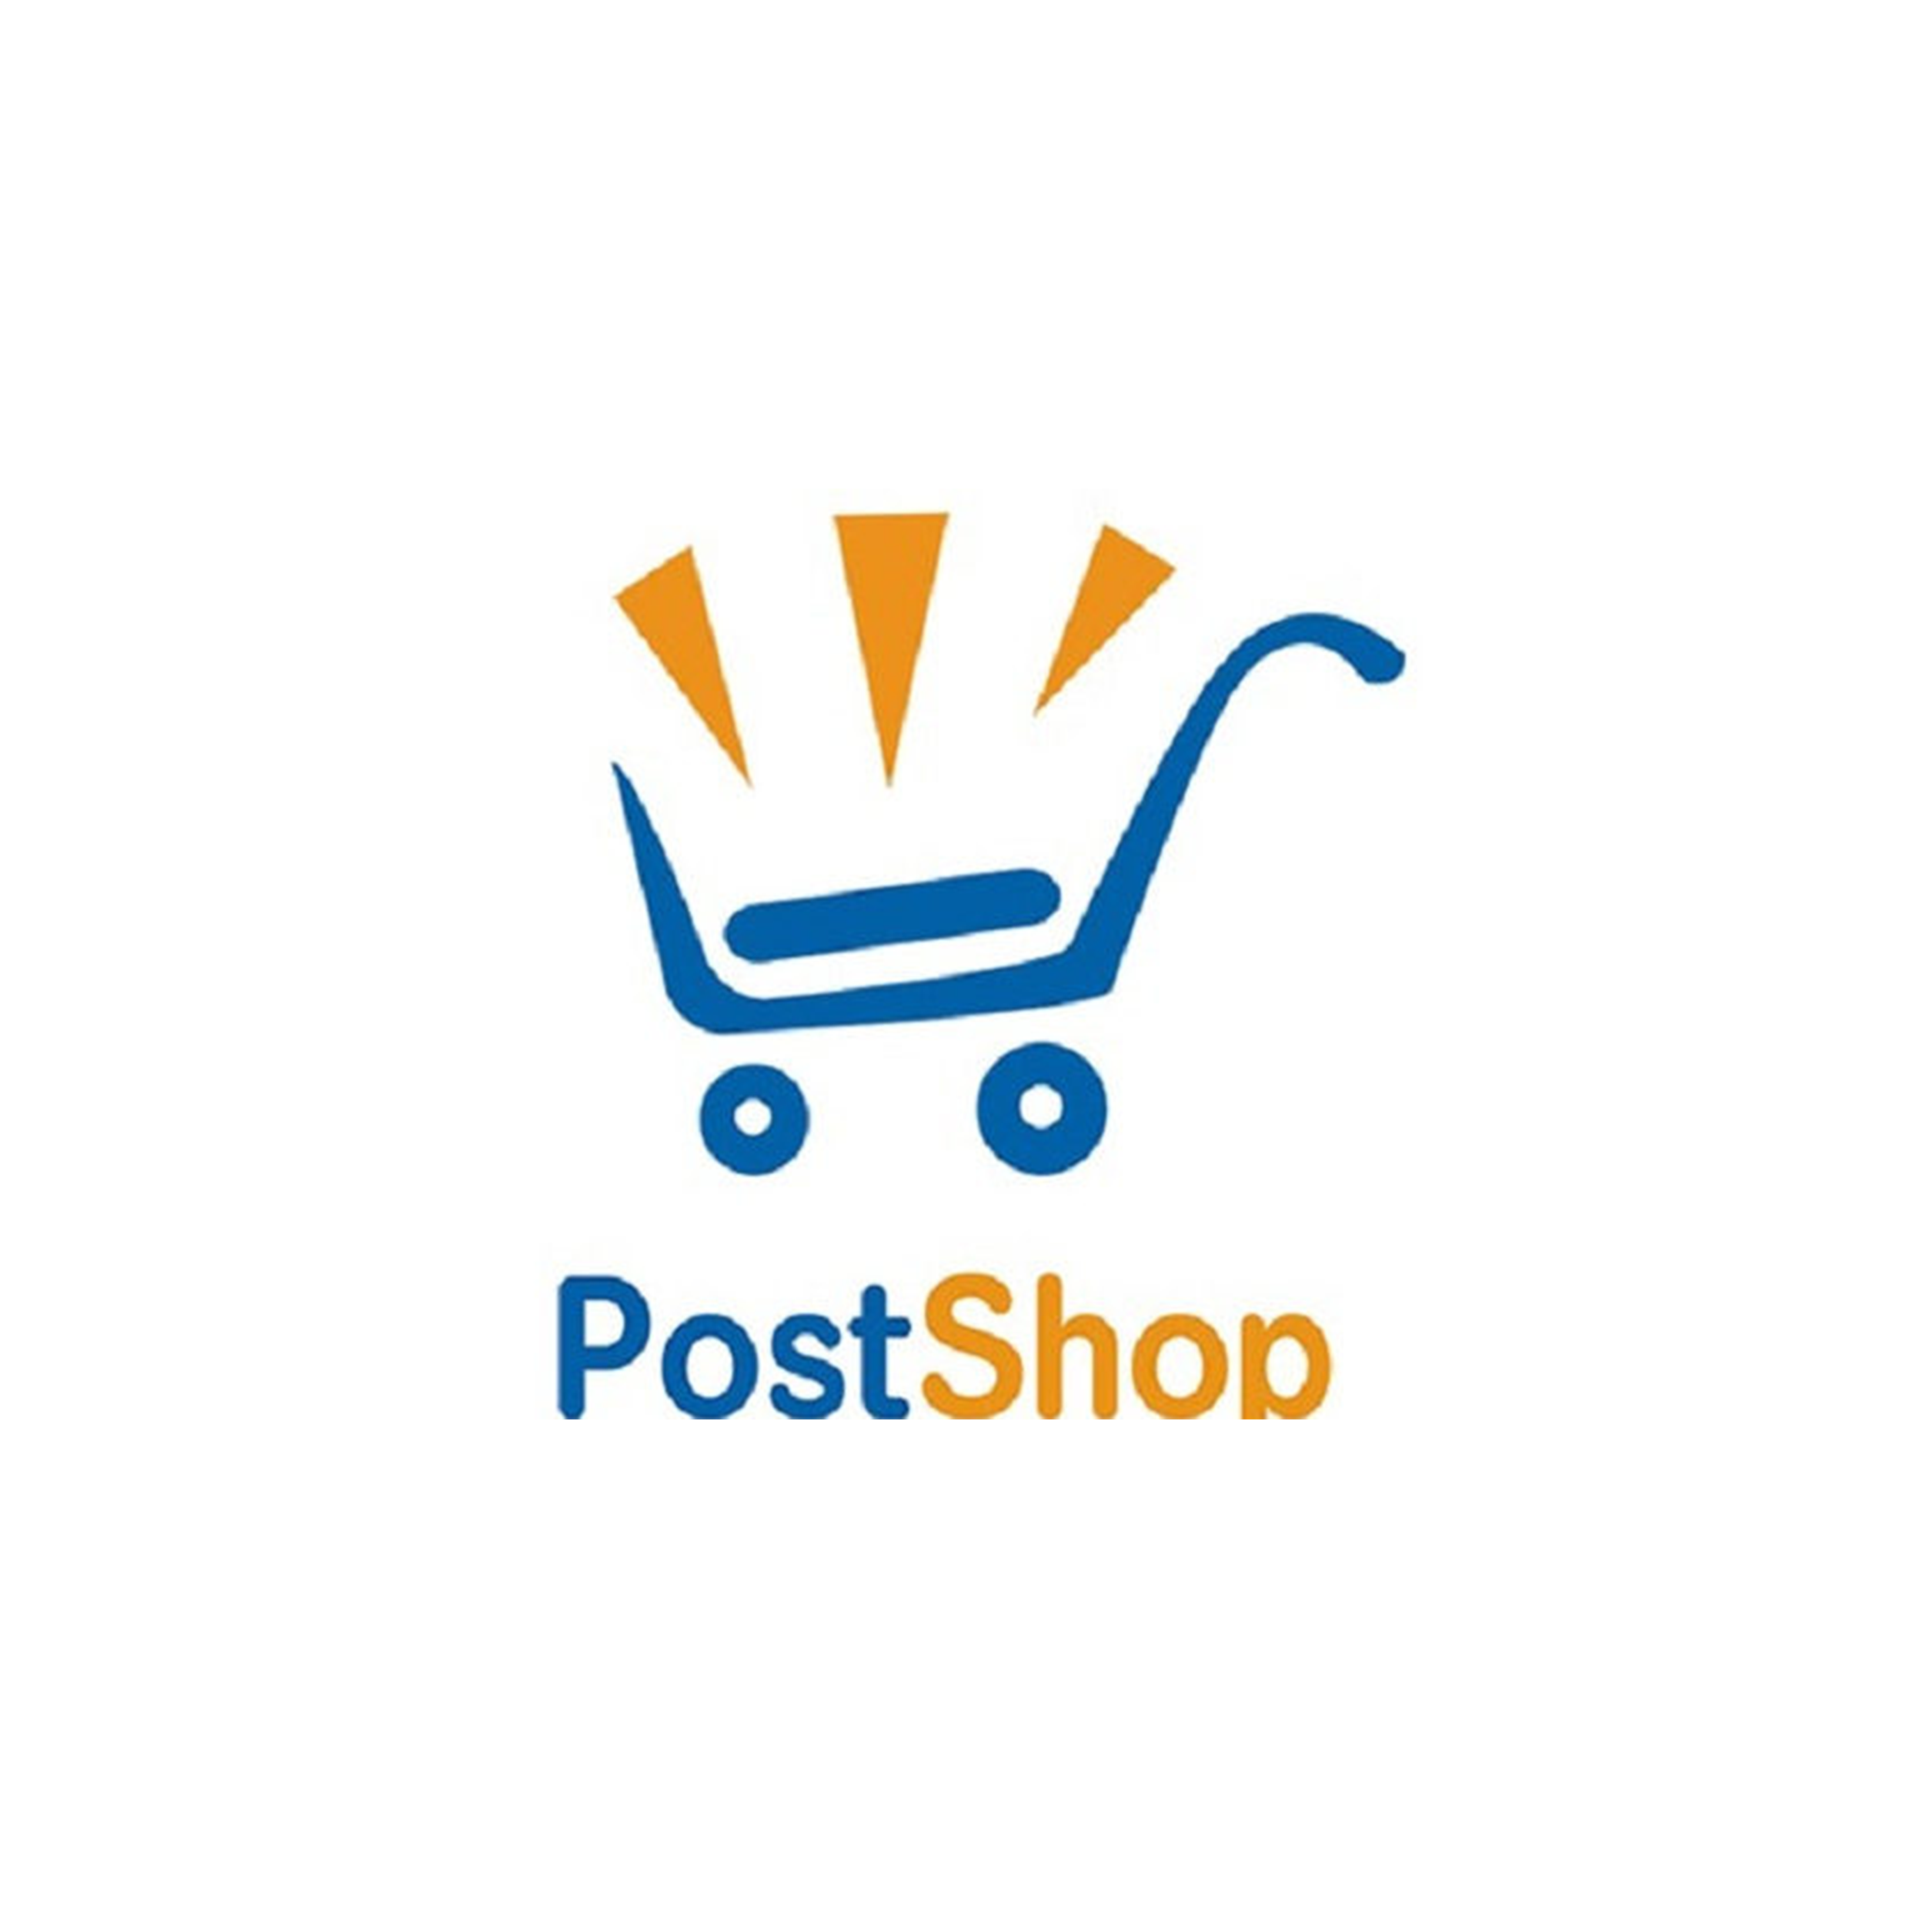 Ghana Post Boosts Local Entrepreneurship Through Online Platform